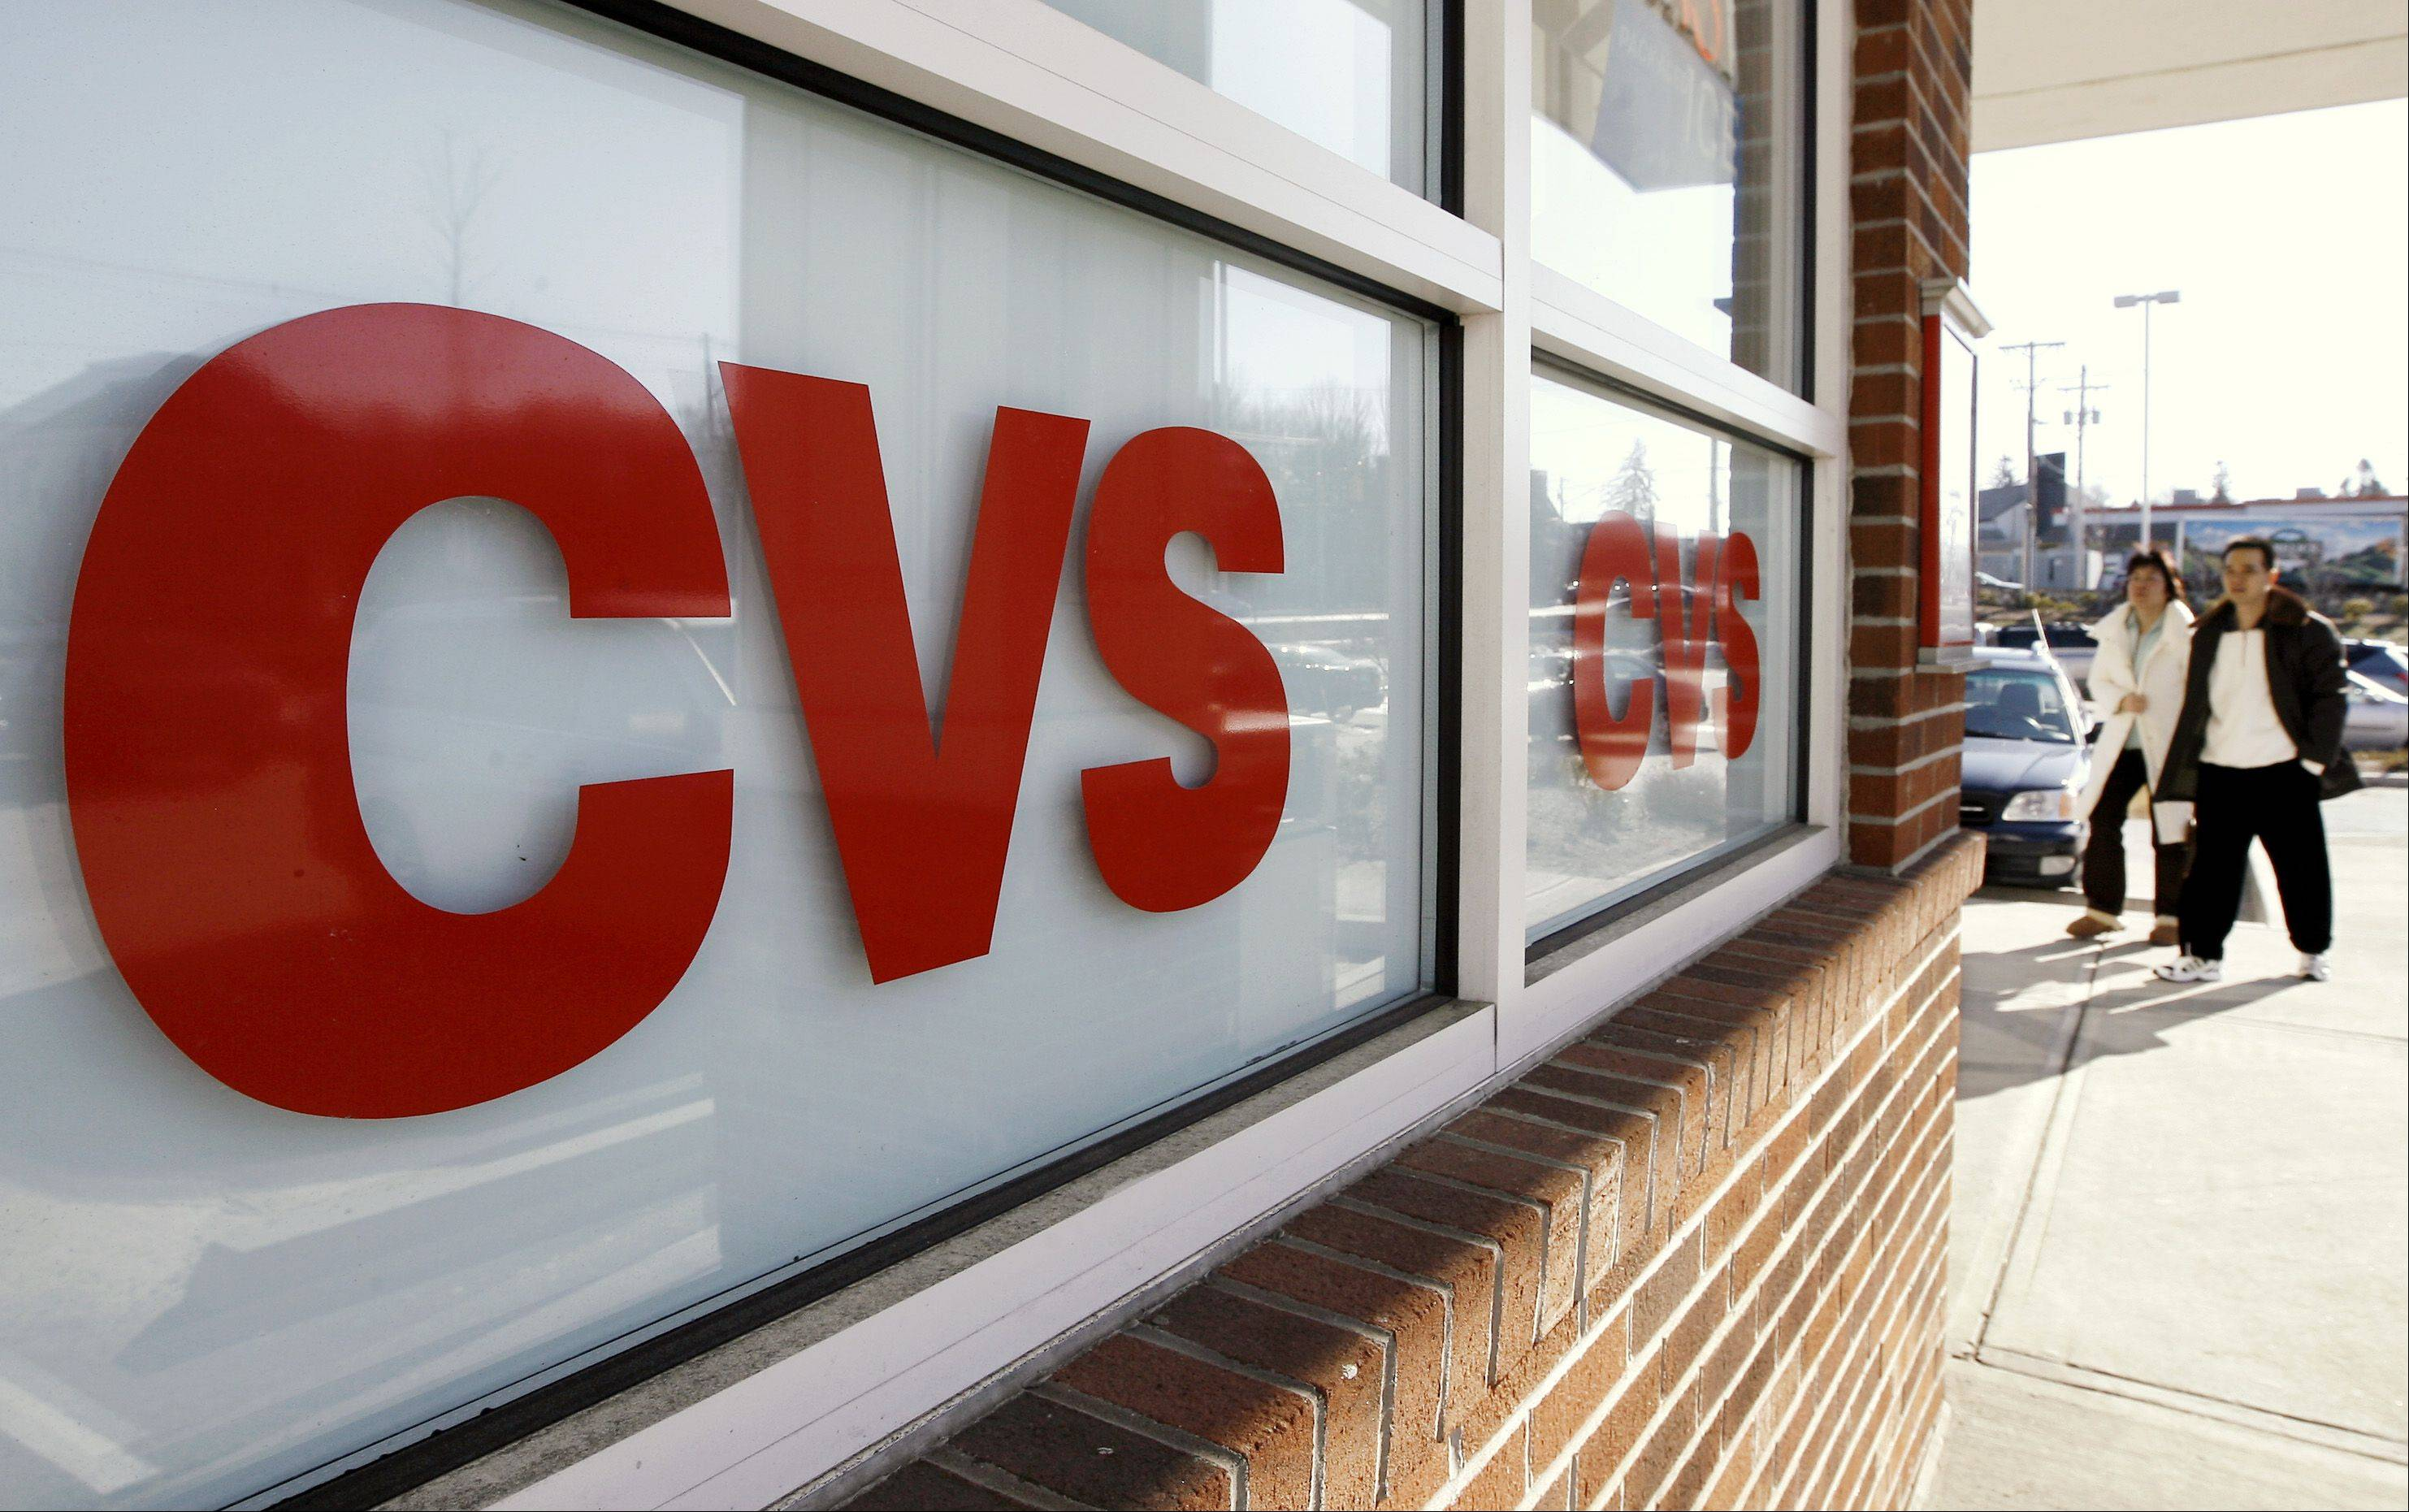 The Department of Justice says a unit of CVS Caremark has agreed to pay over $5 million to settle allegations that it reported false prescription drug pricing data to the government�s Medicare program.